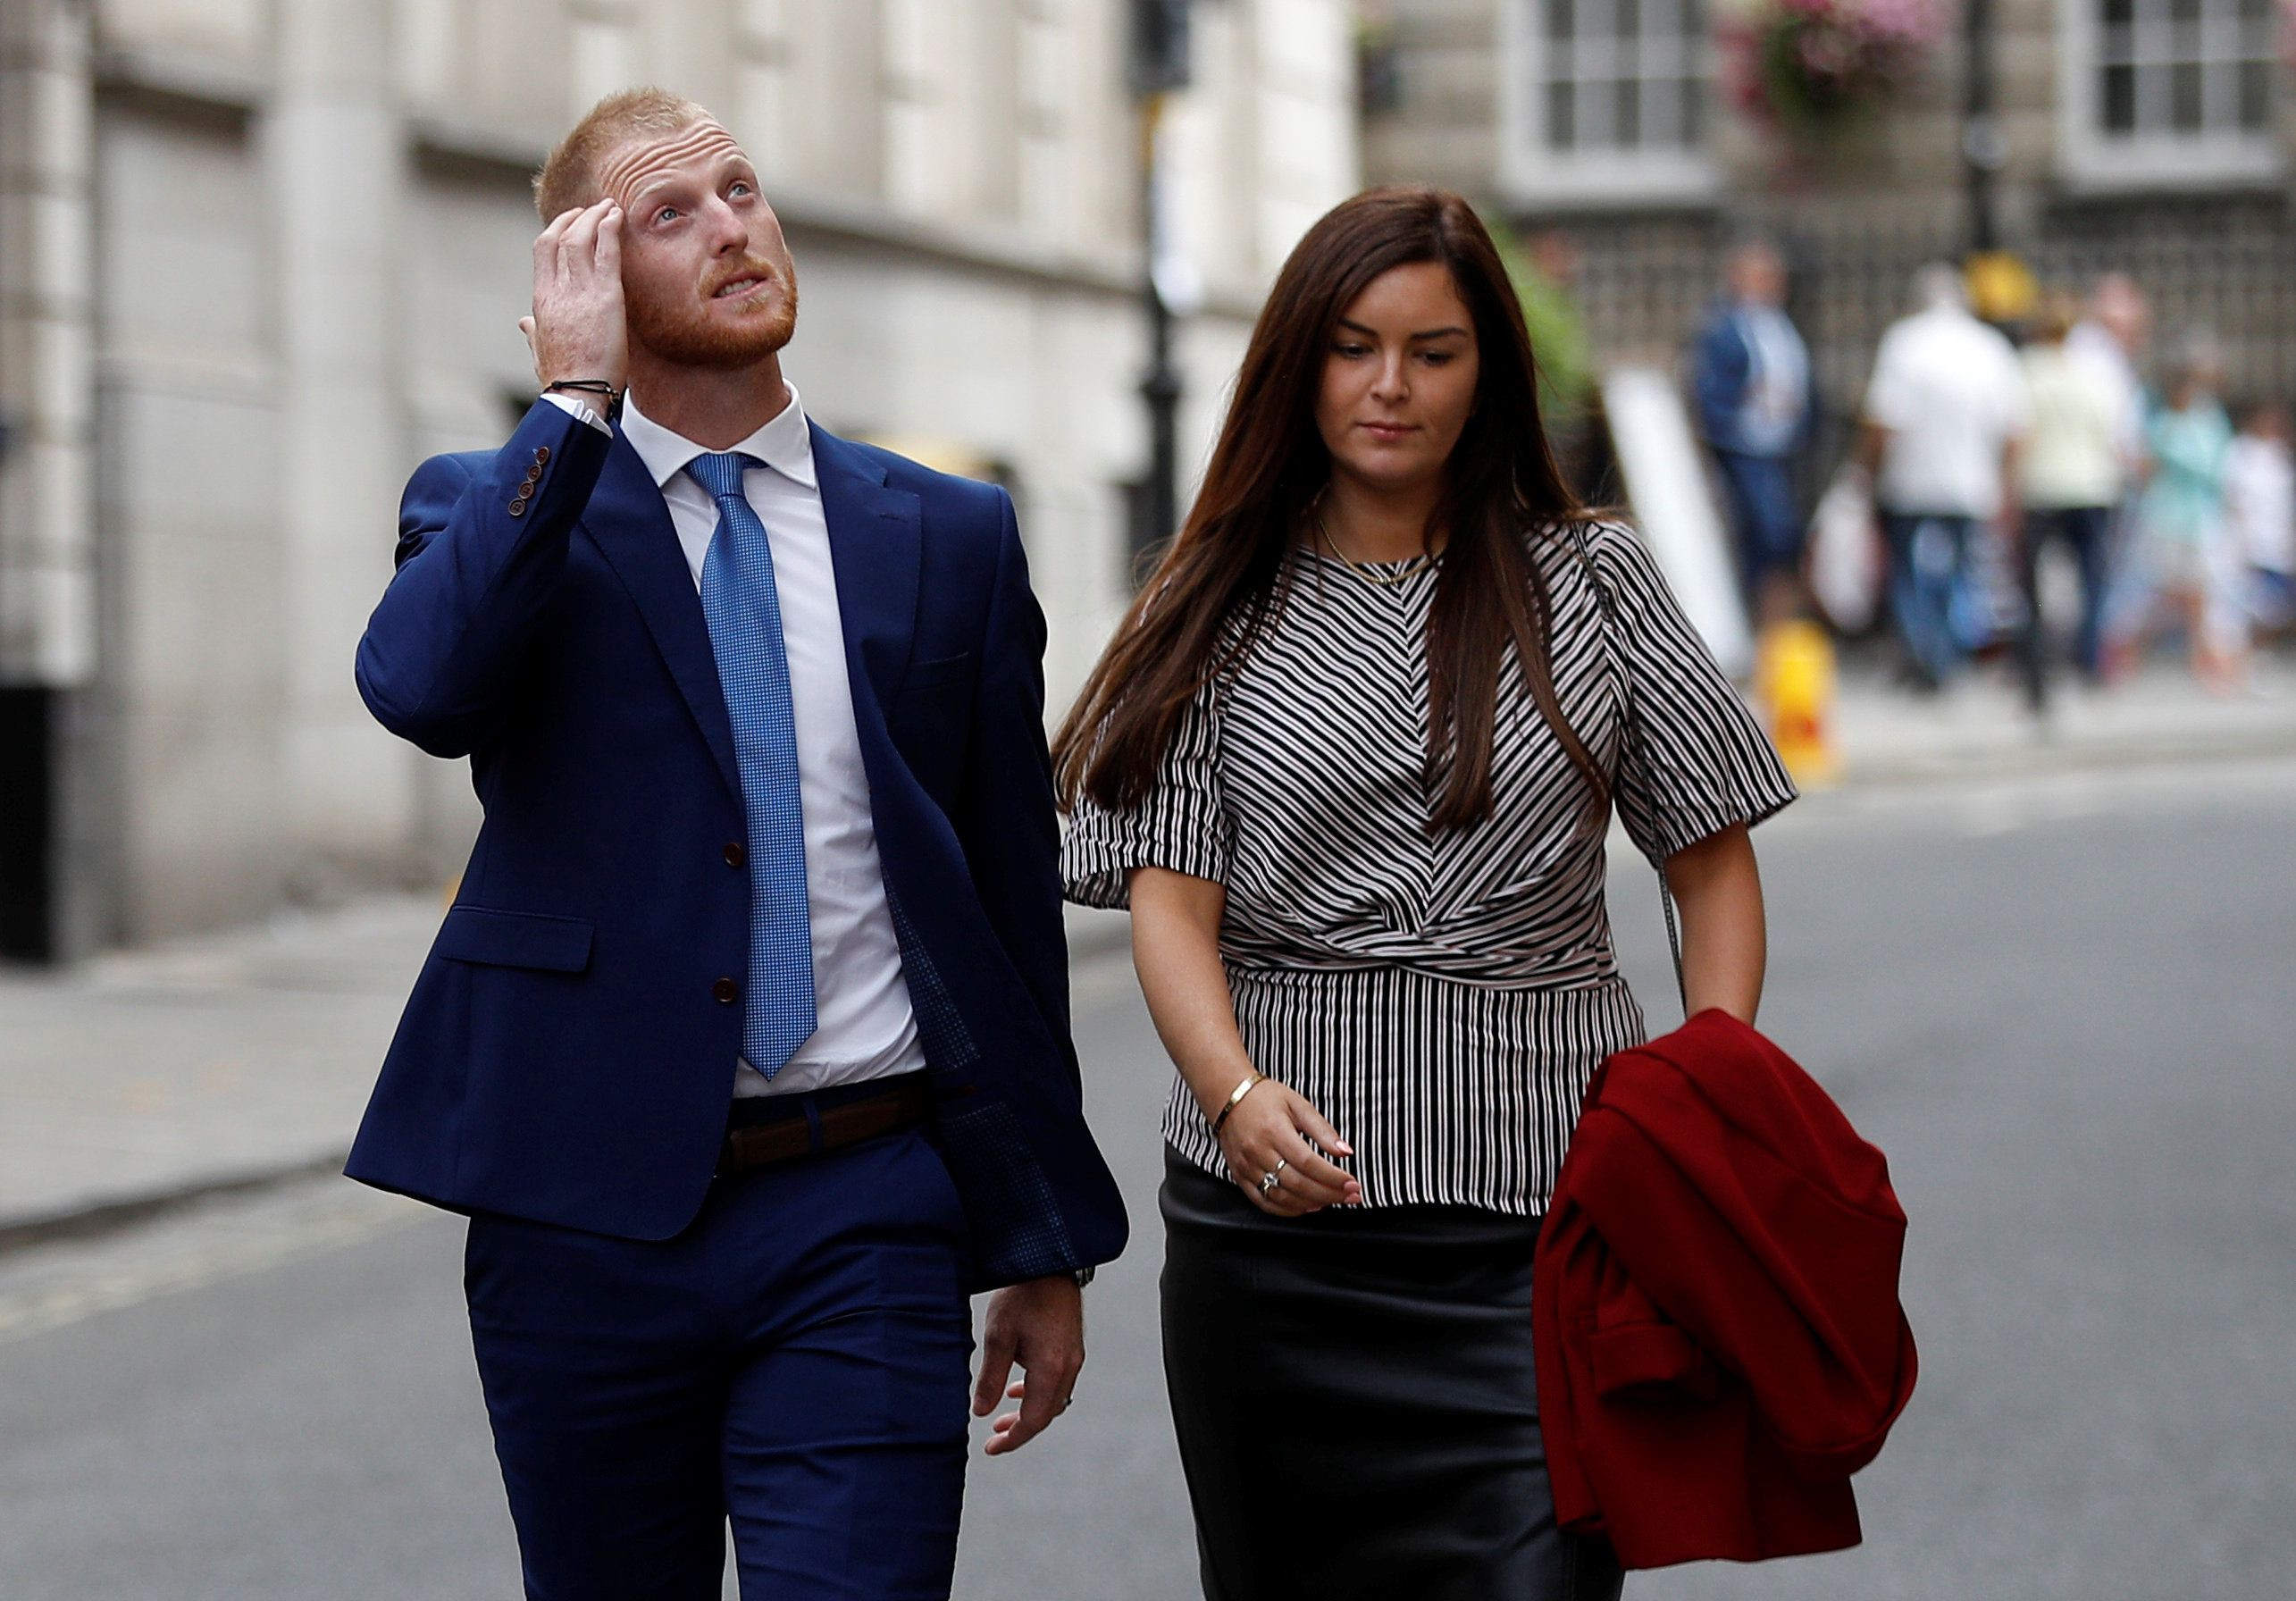 Cricketer Ben Stokes, charged for affray, arriving at court with his wife.